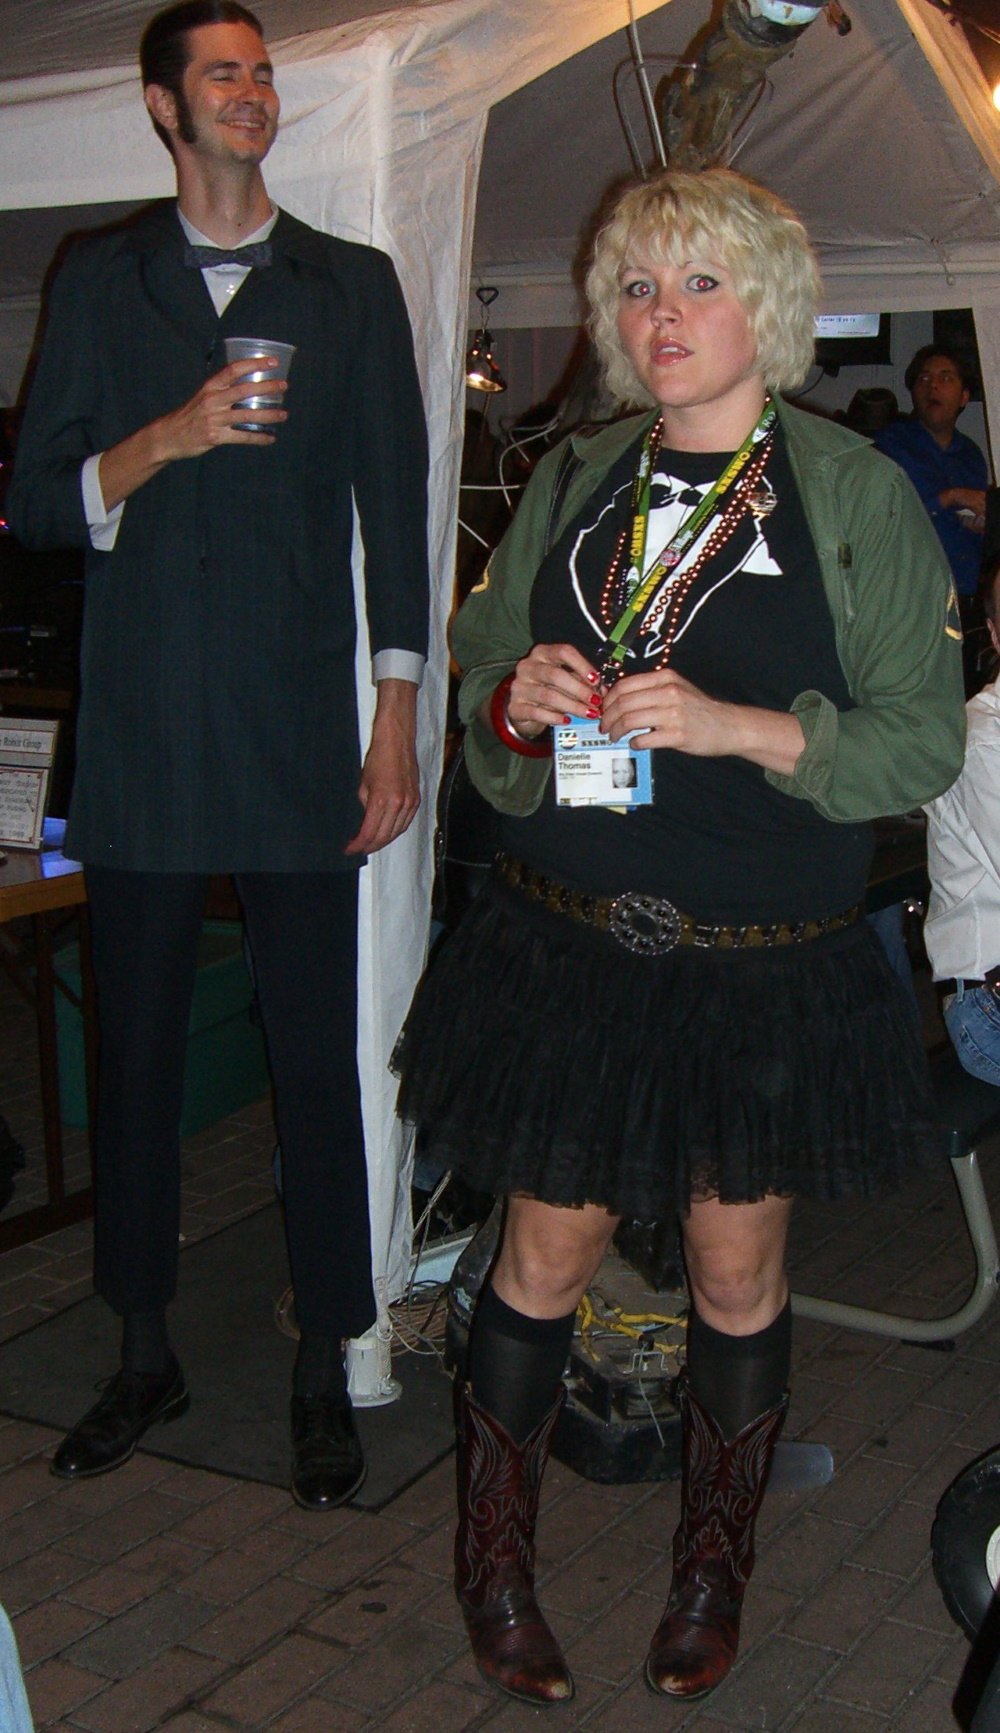 A tall guy in a deliberately ill-fitting suit at the SXSW 2007 Steampunk party